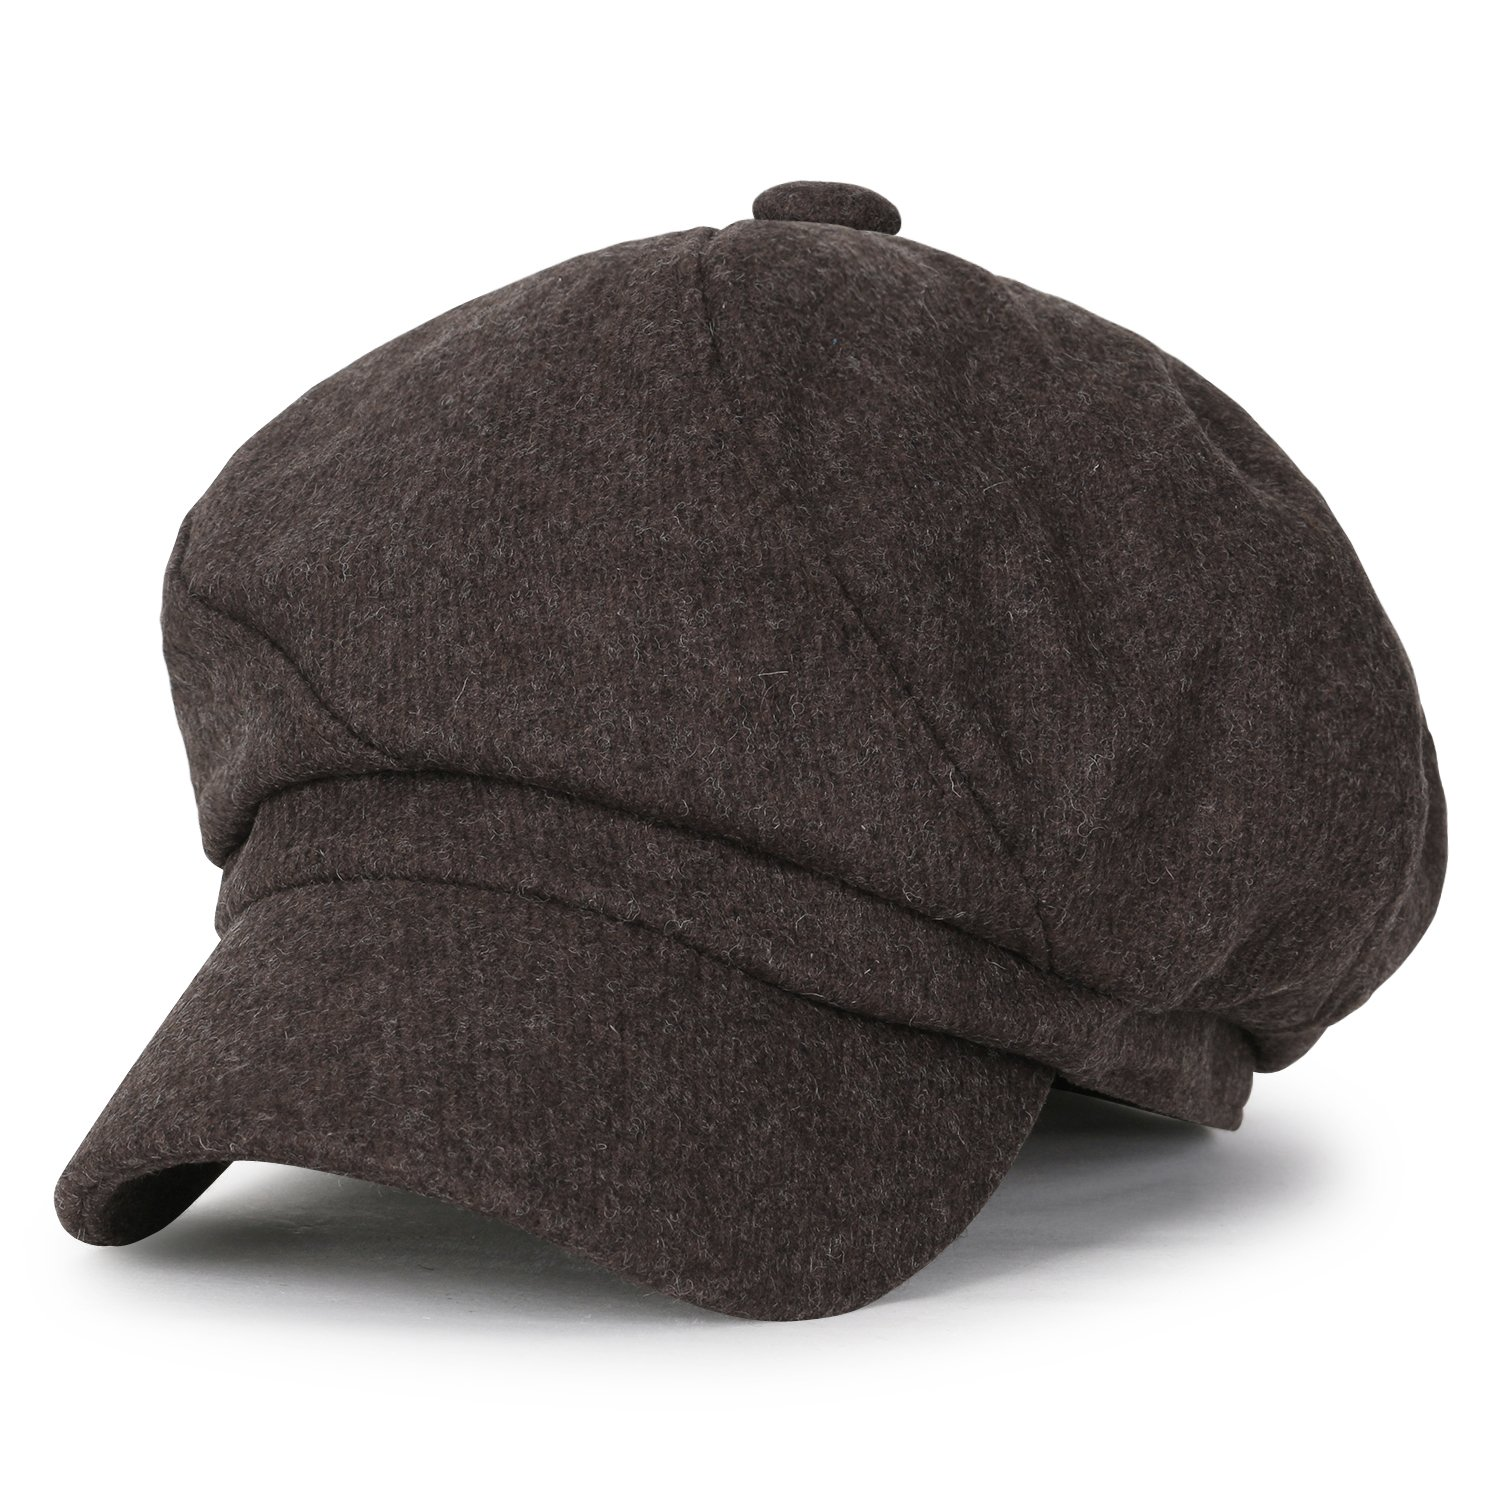 5045ecebff3bb ililily Solid Wool-Blended Vintage Newsboy Hat Duck Bill Gatsby Ivy Flat Cap  Black